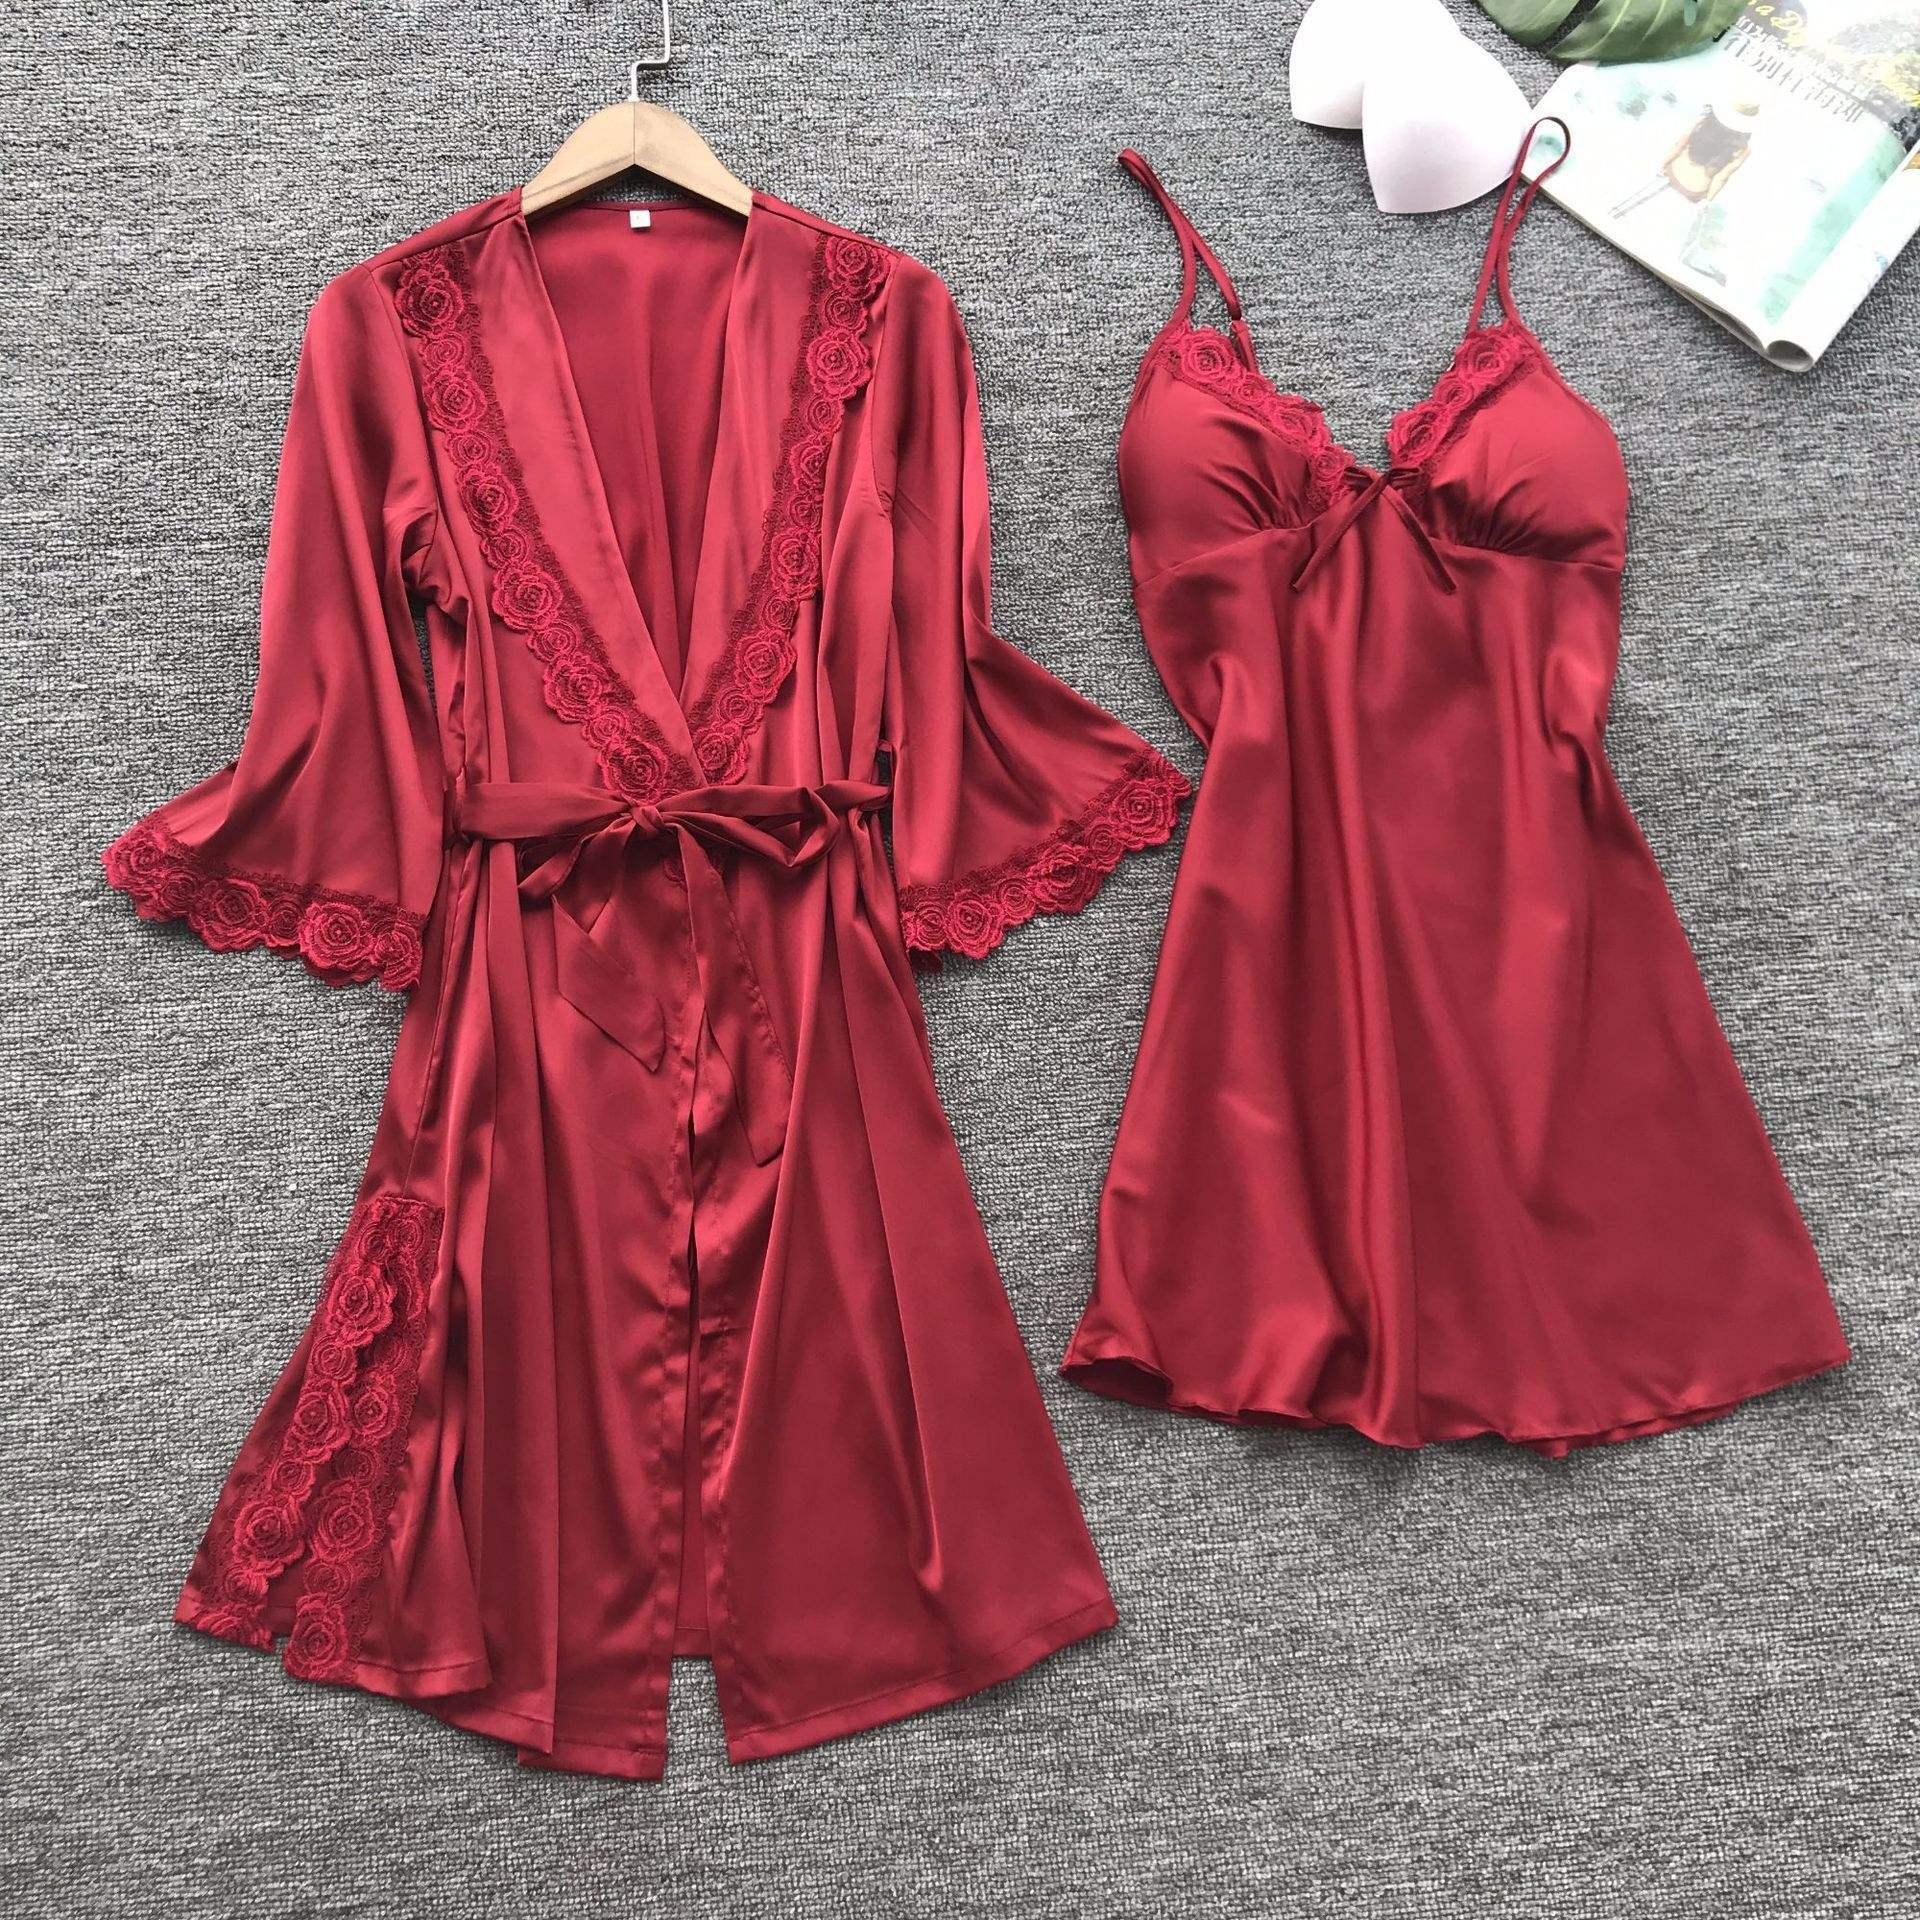 Sexy Women's Robe & Gown Sets Lace Bathrobe + Night Dress 4 Four Pieces Sleepwear Womens Sleep Set Faux Silk Robe Femme